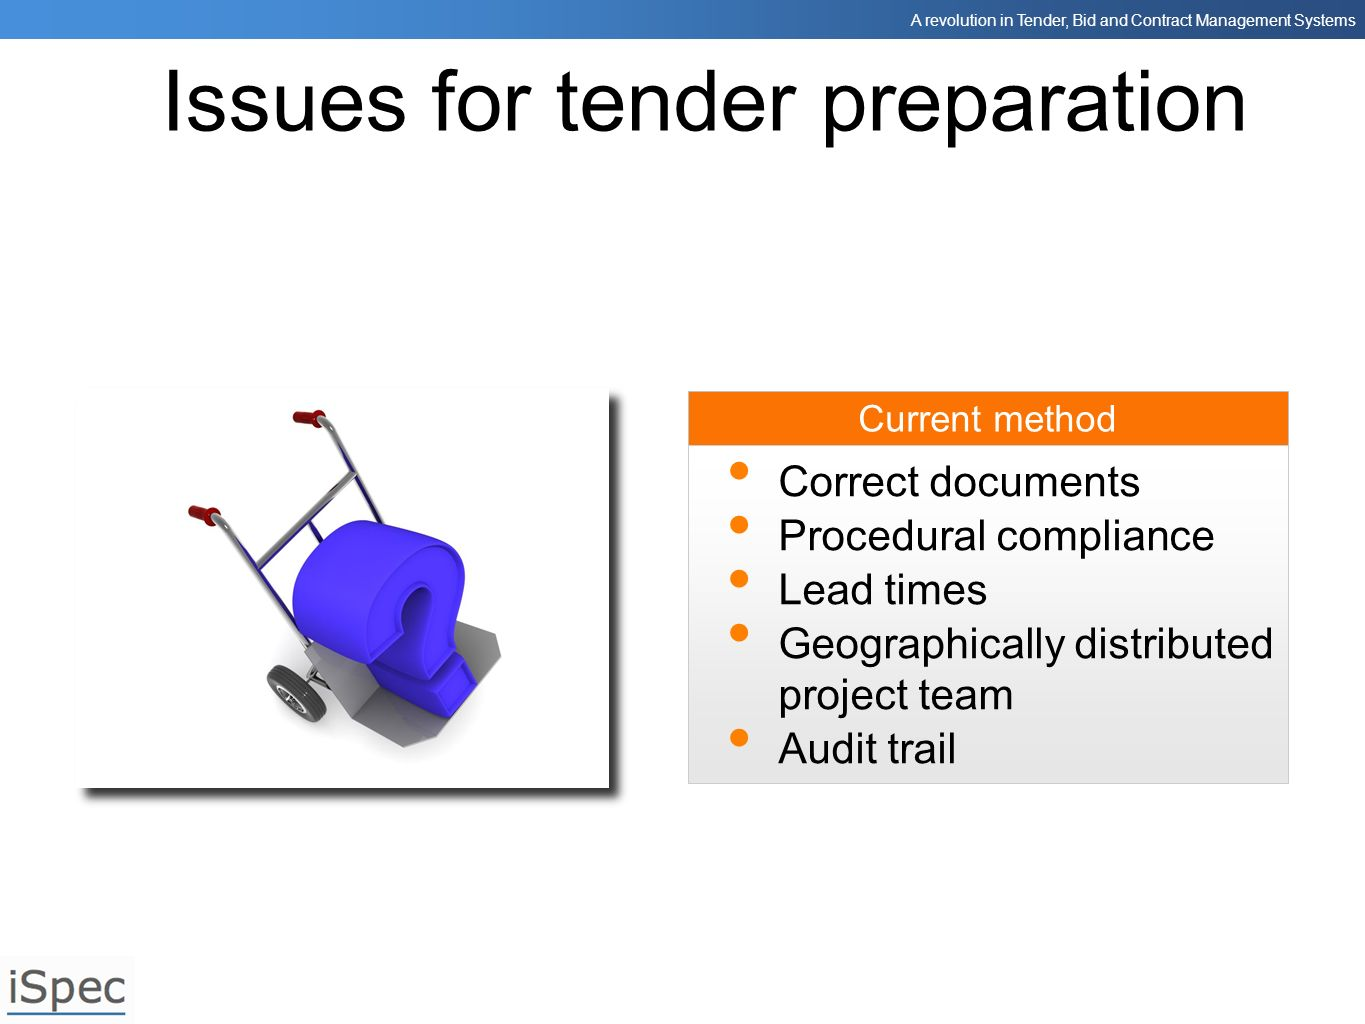 Issues for tender preparation